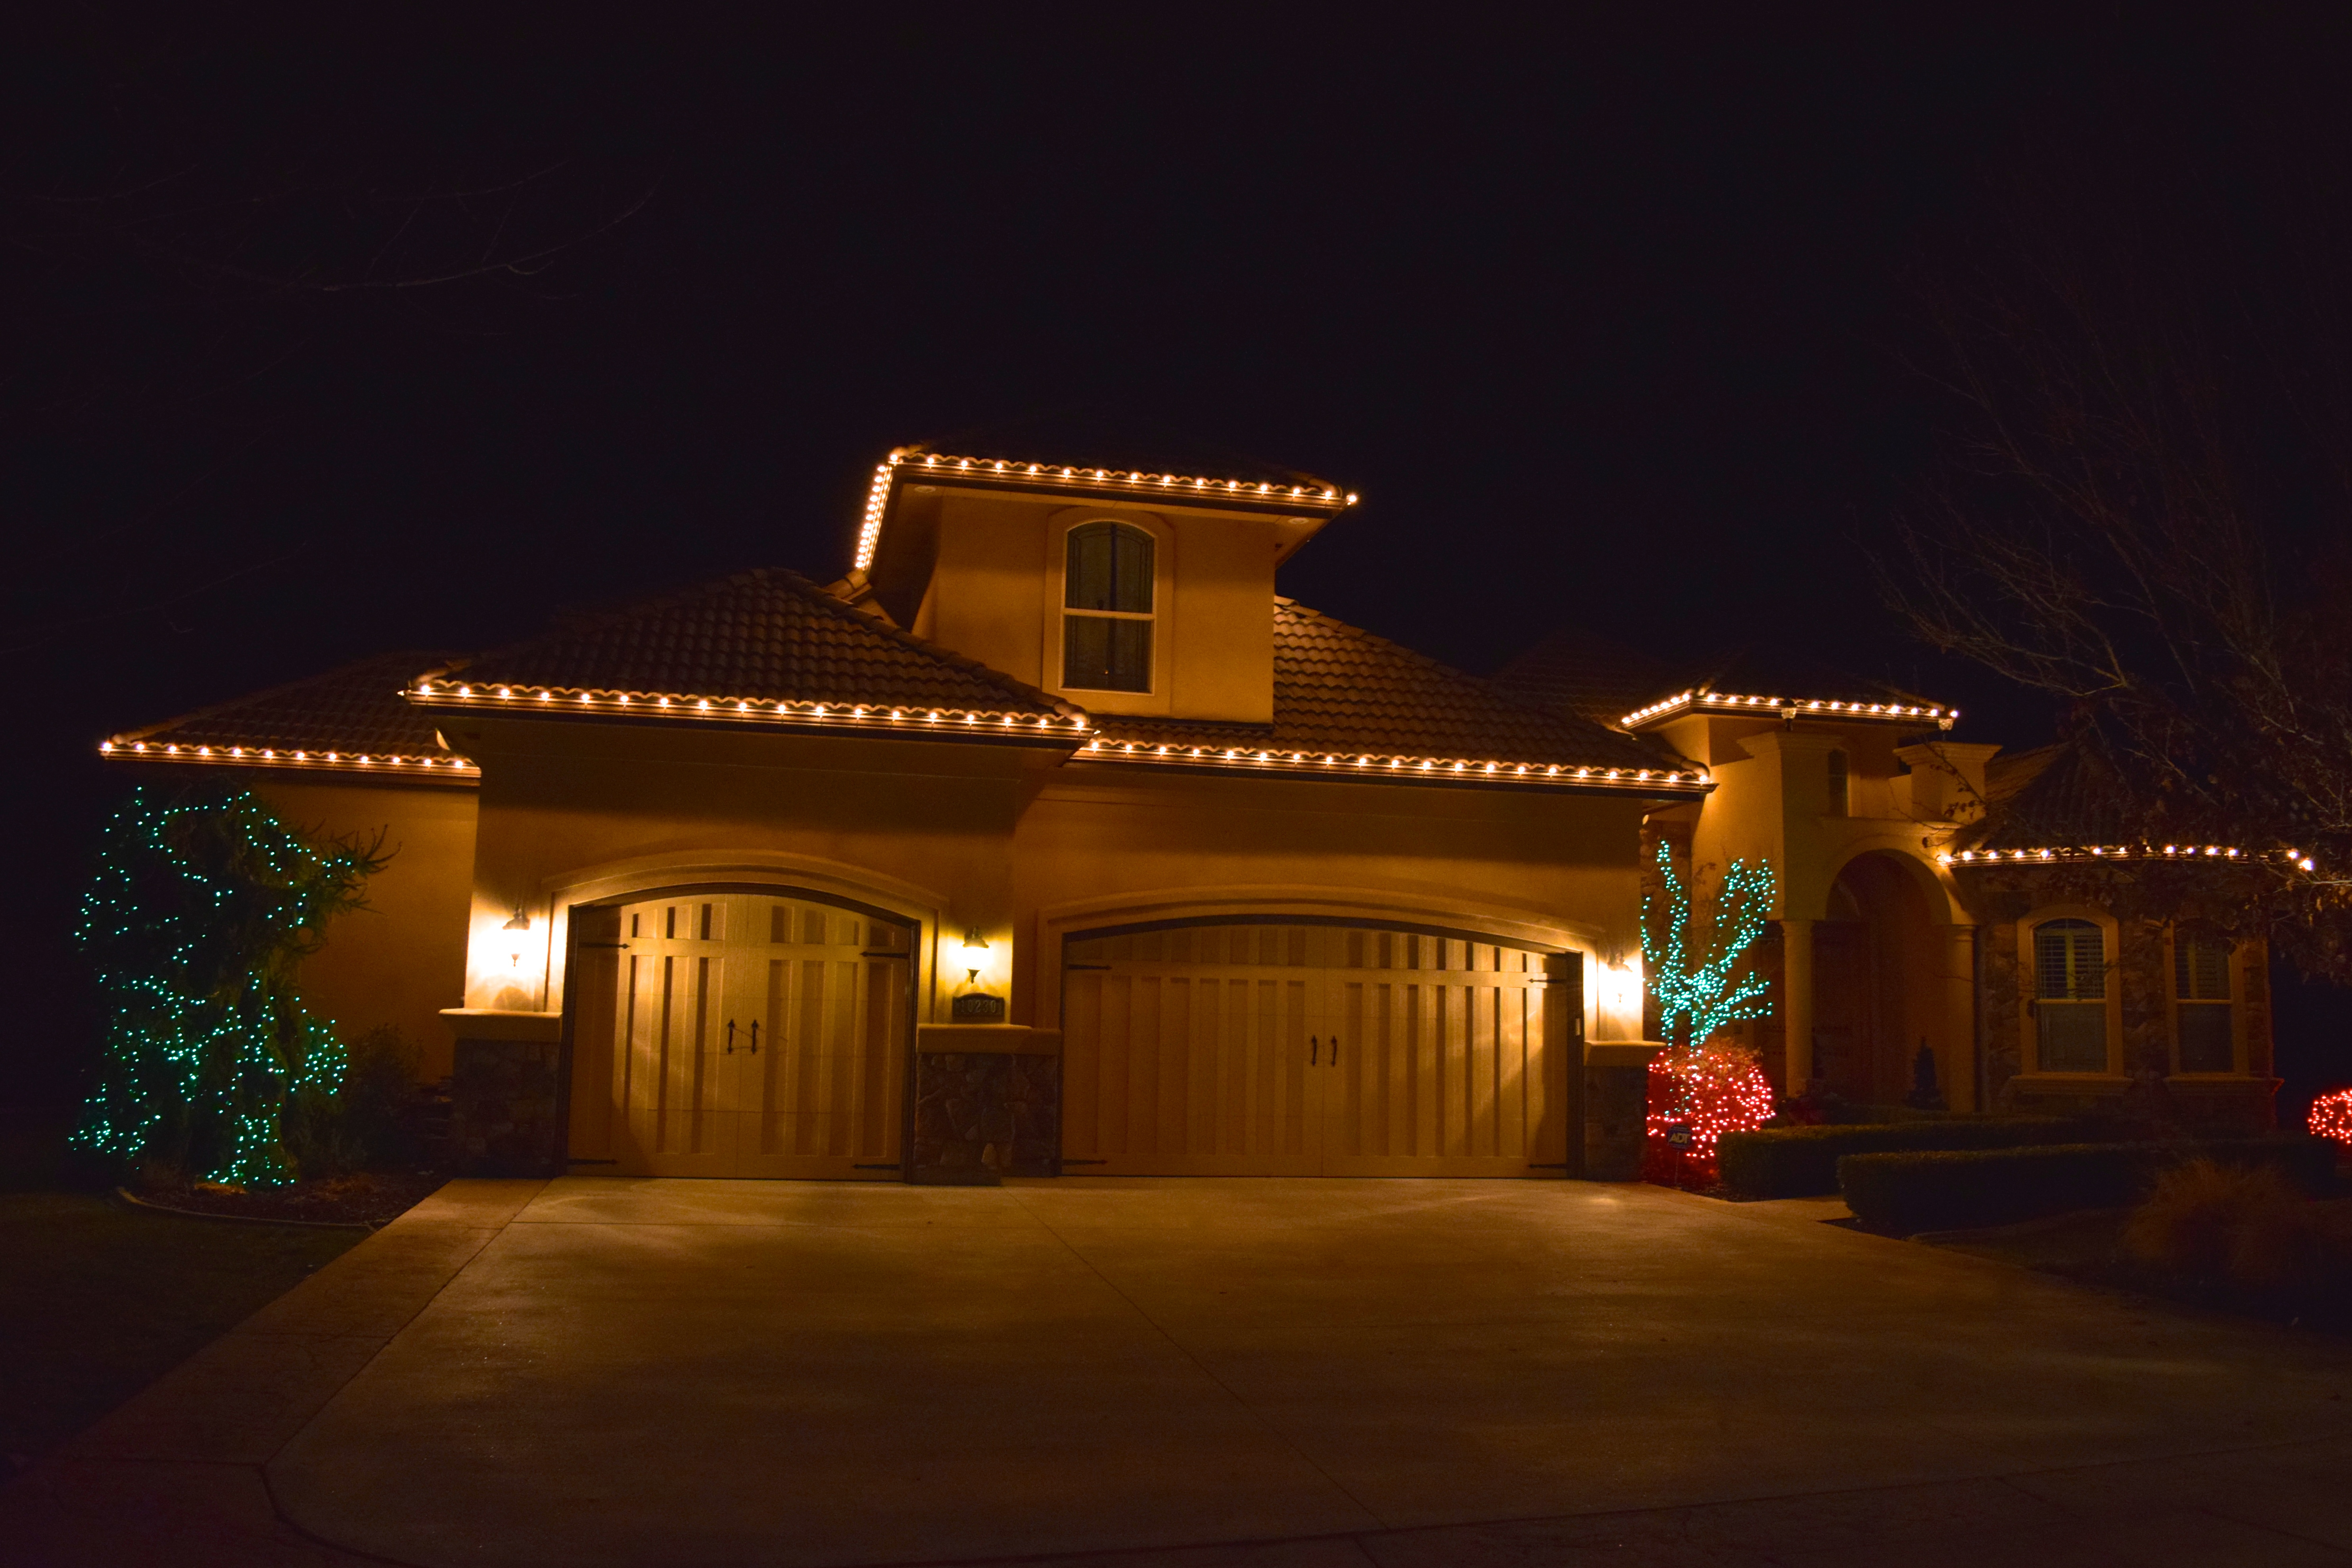 Incandescent Christmas Lights - Clear